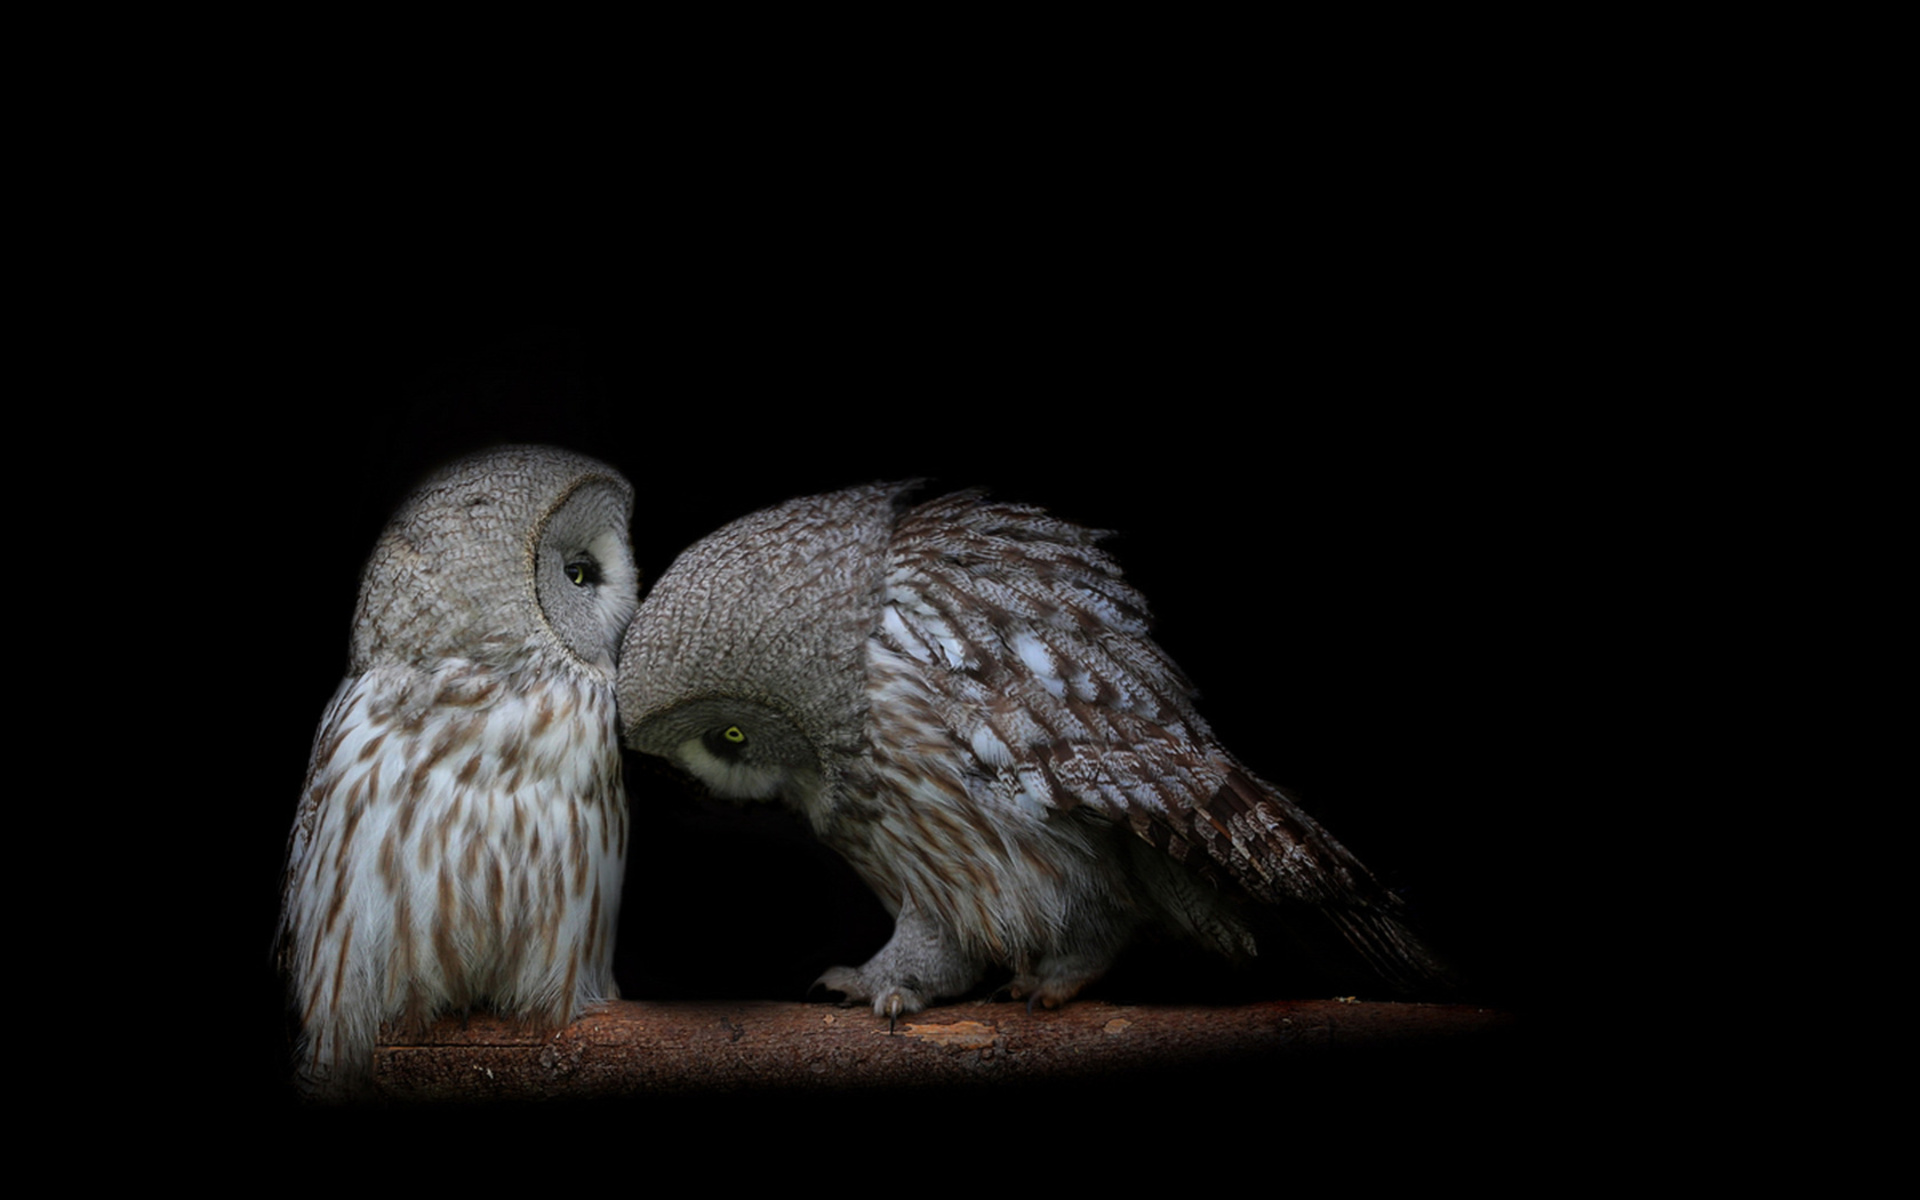 owls cuddling wallpaper 62953